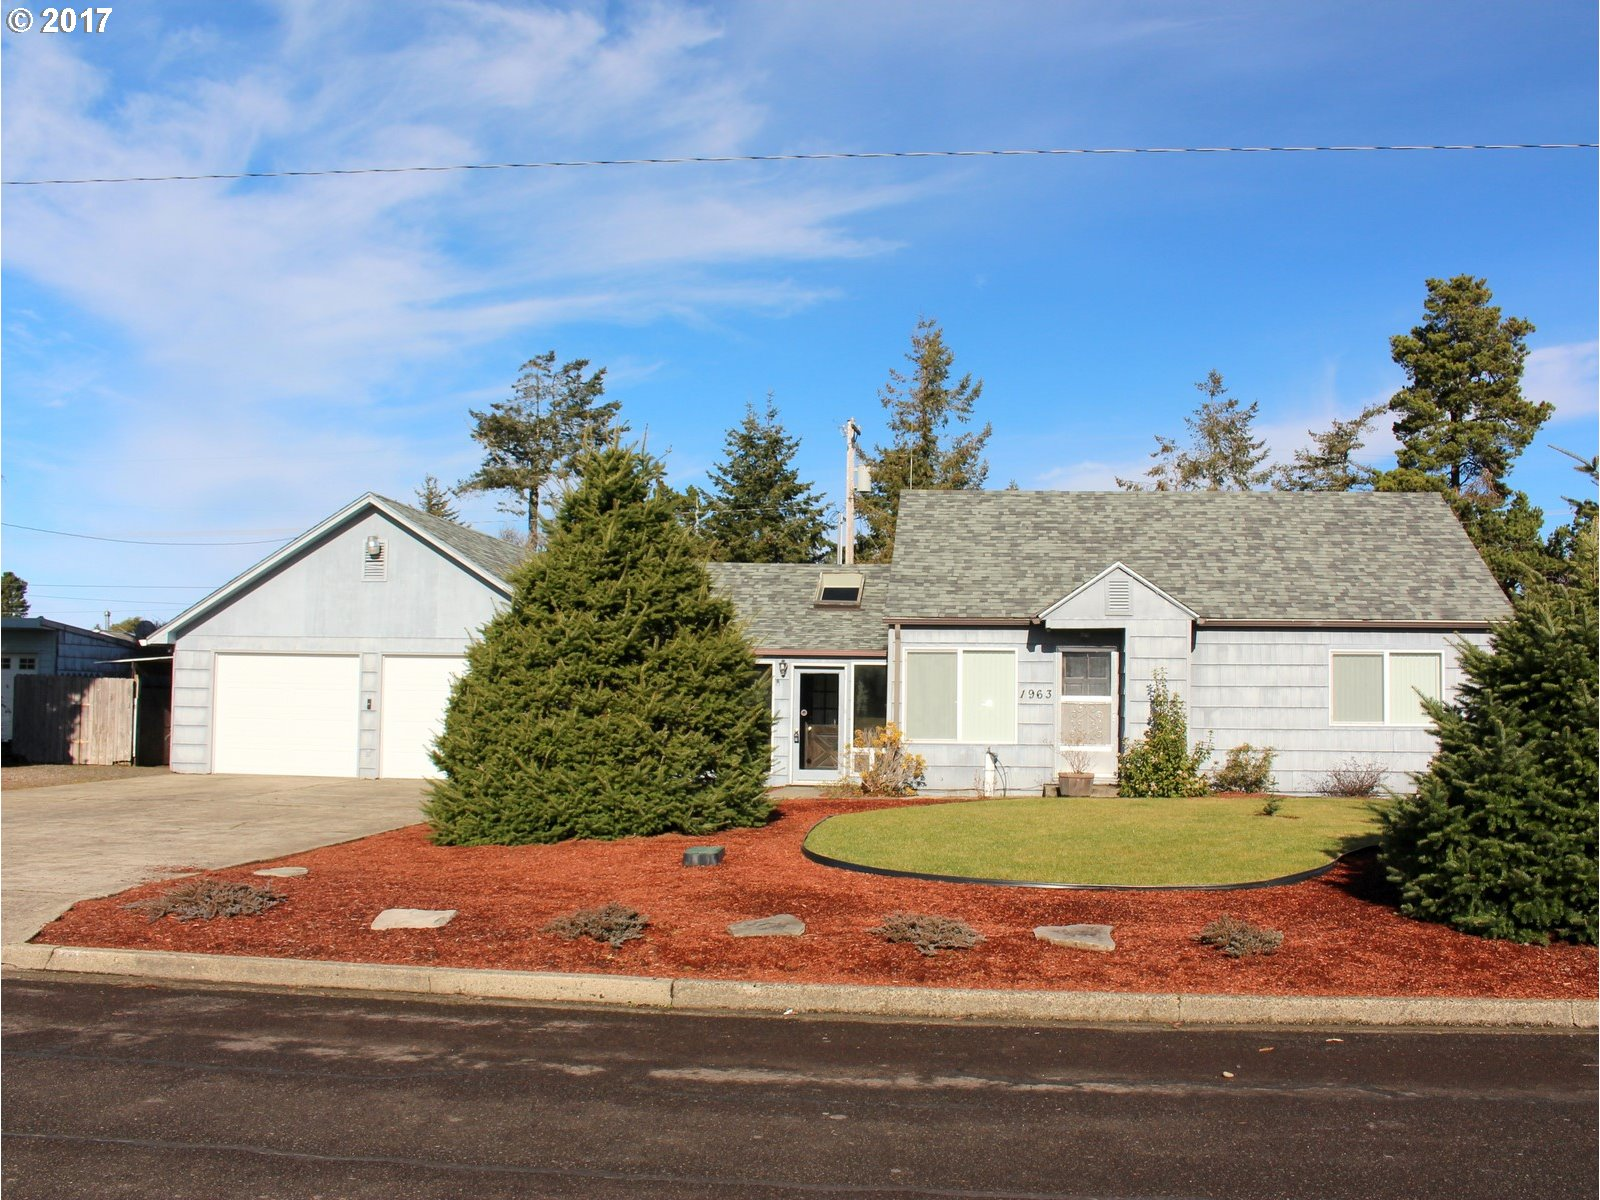 1685 sq. ft 4 bedrooms 2 bathrooms  House For Sale,Florence, OR